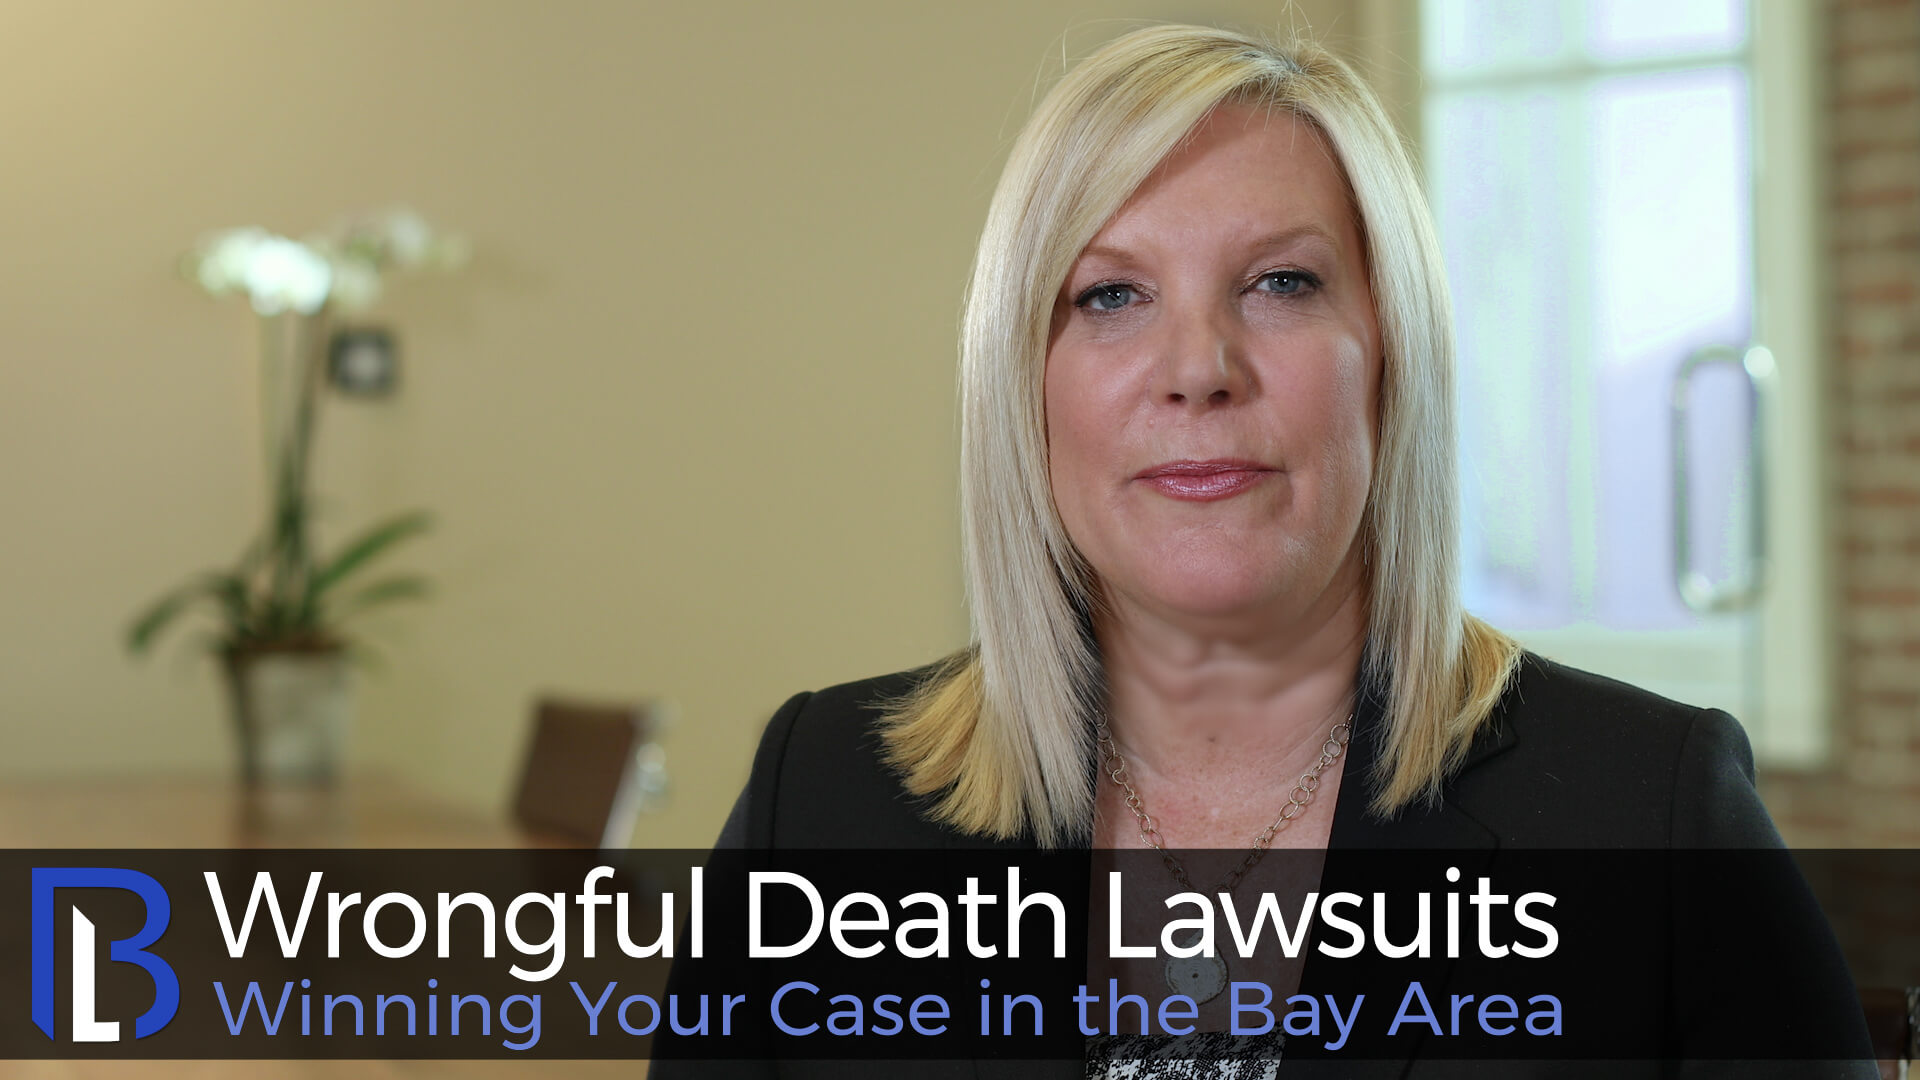 An image of an esteemed San Francisco Wrongful Death Attorney.